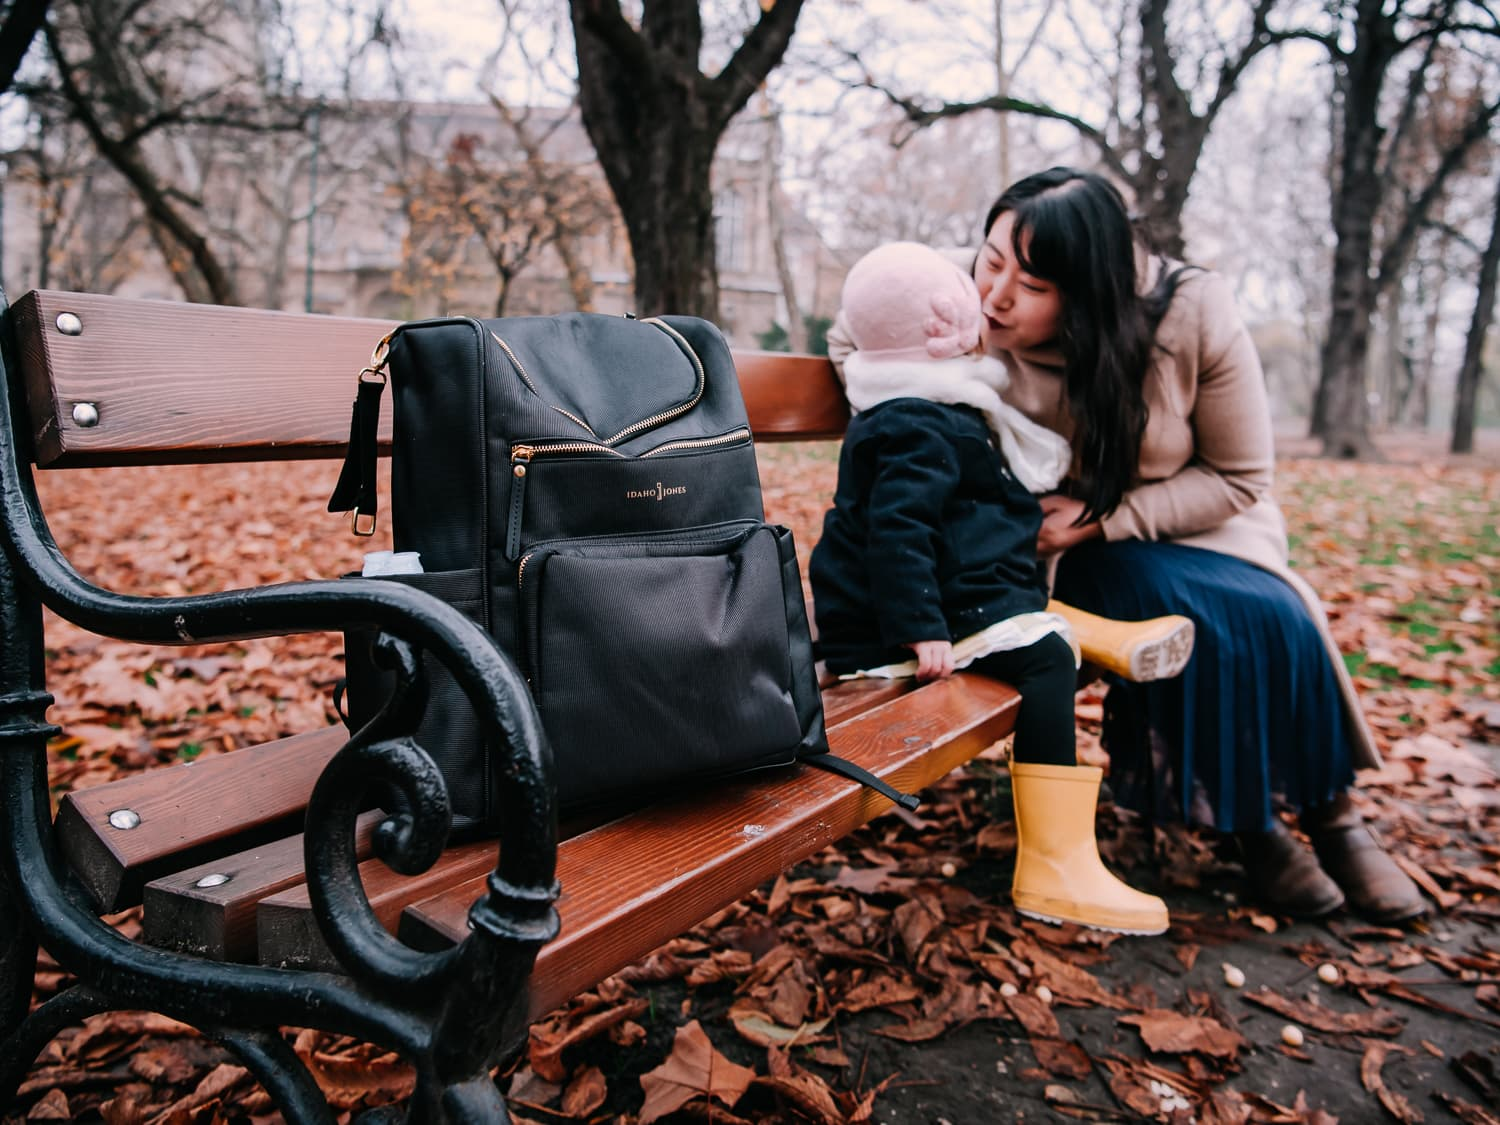 The Idaho Jones Gallivant Baby Changing Diaper Backpack on a park bench.